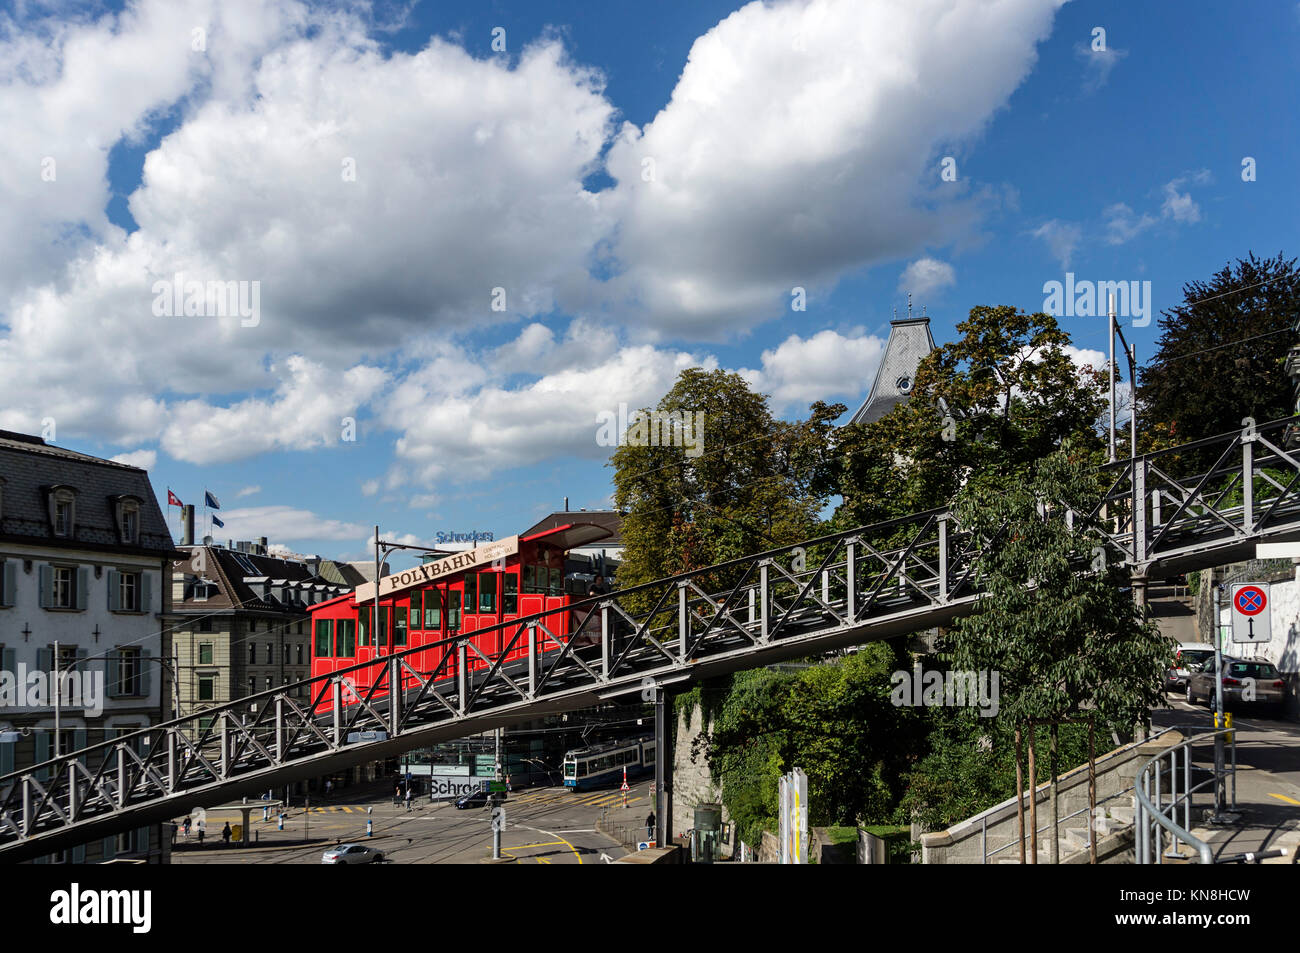 Polybahn, Zurich, Switzerland - Stock Image